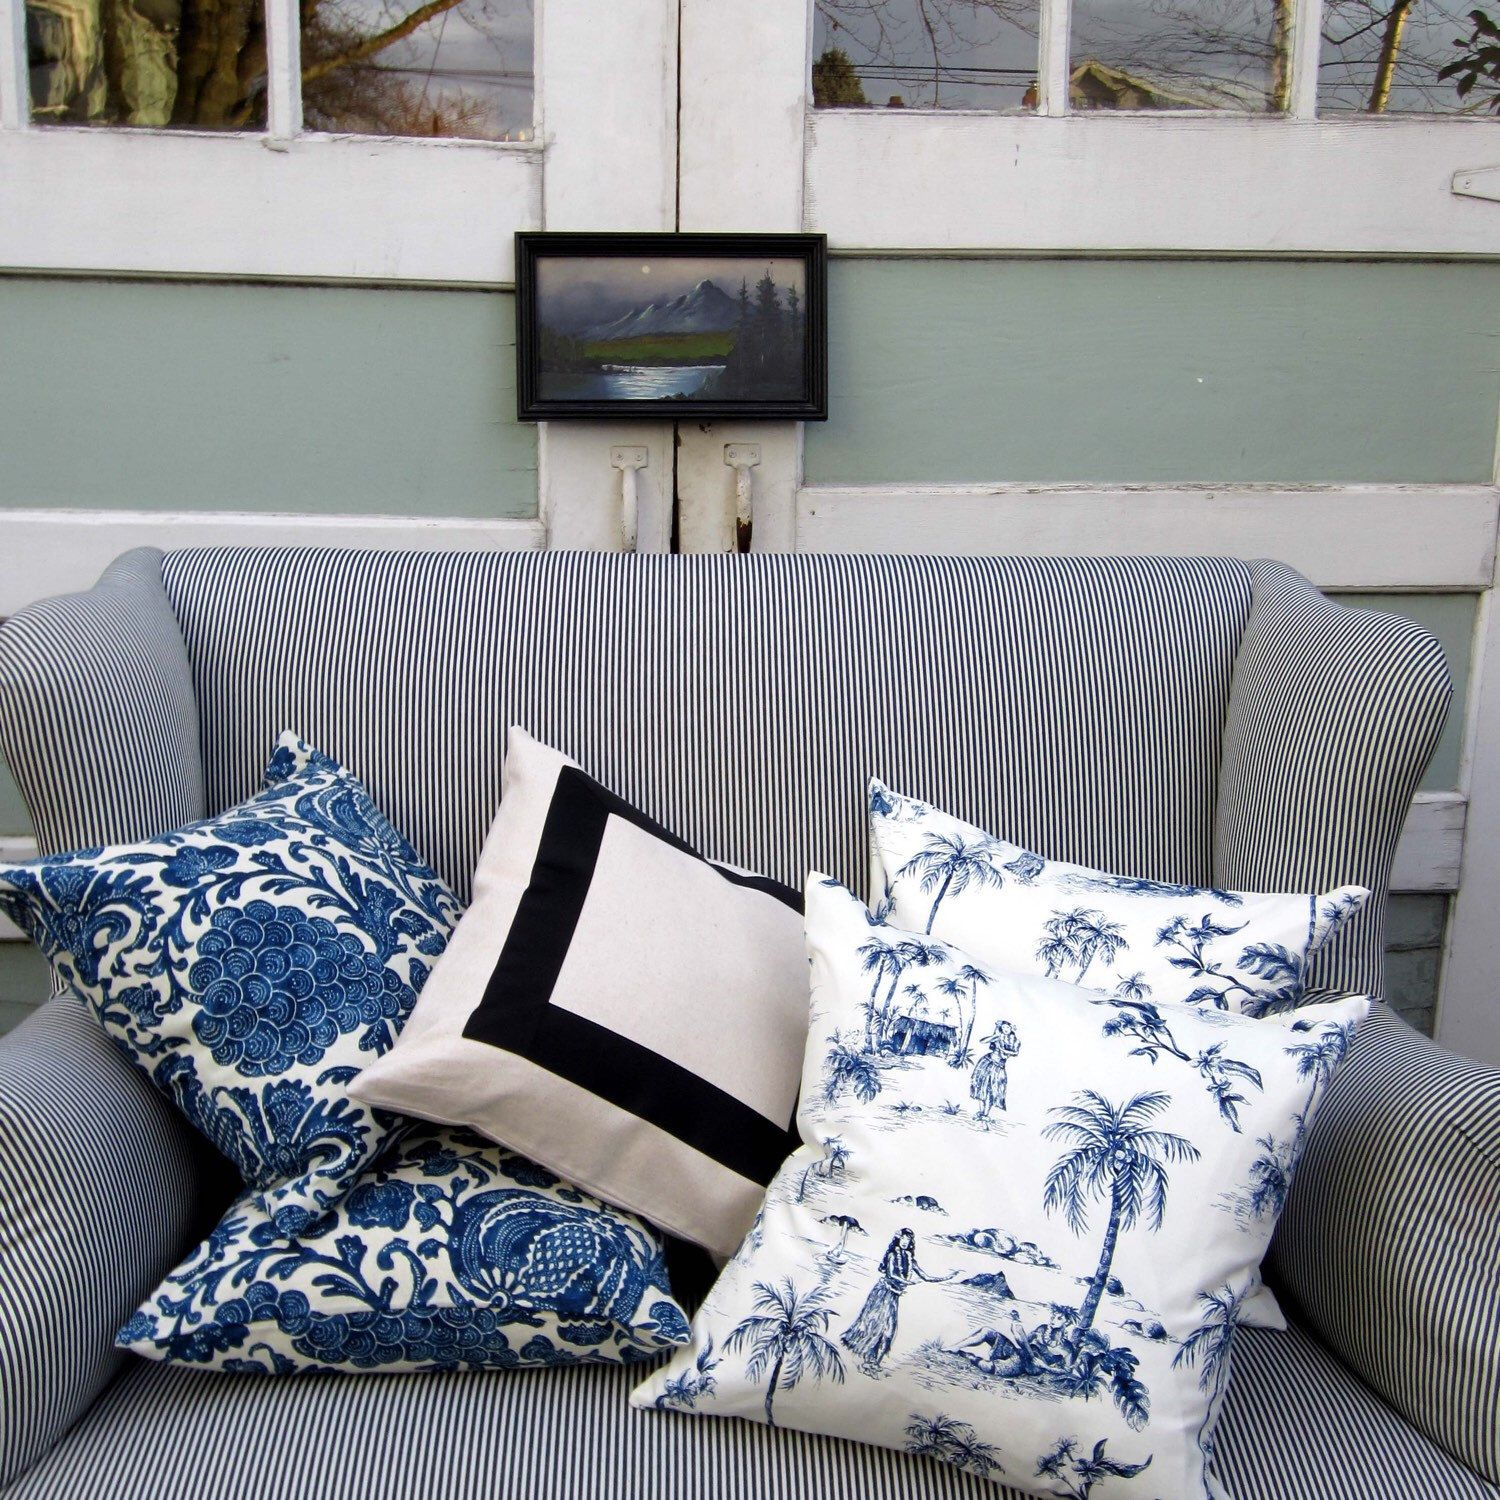 These blue batik floral pillows look nice with the black ribbon and